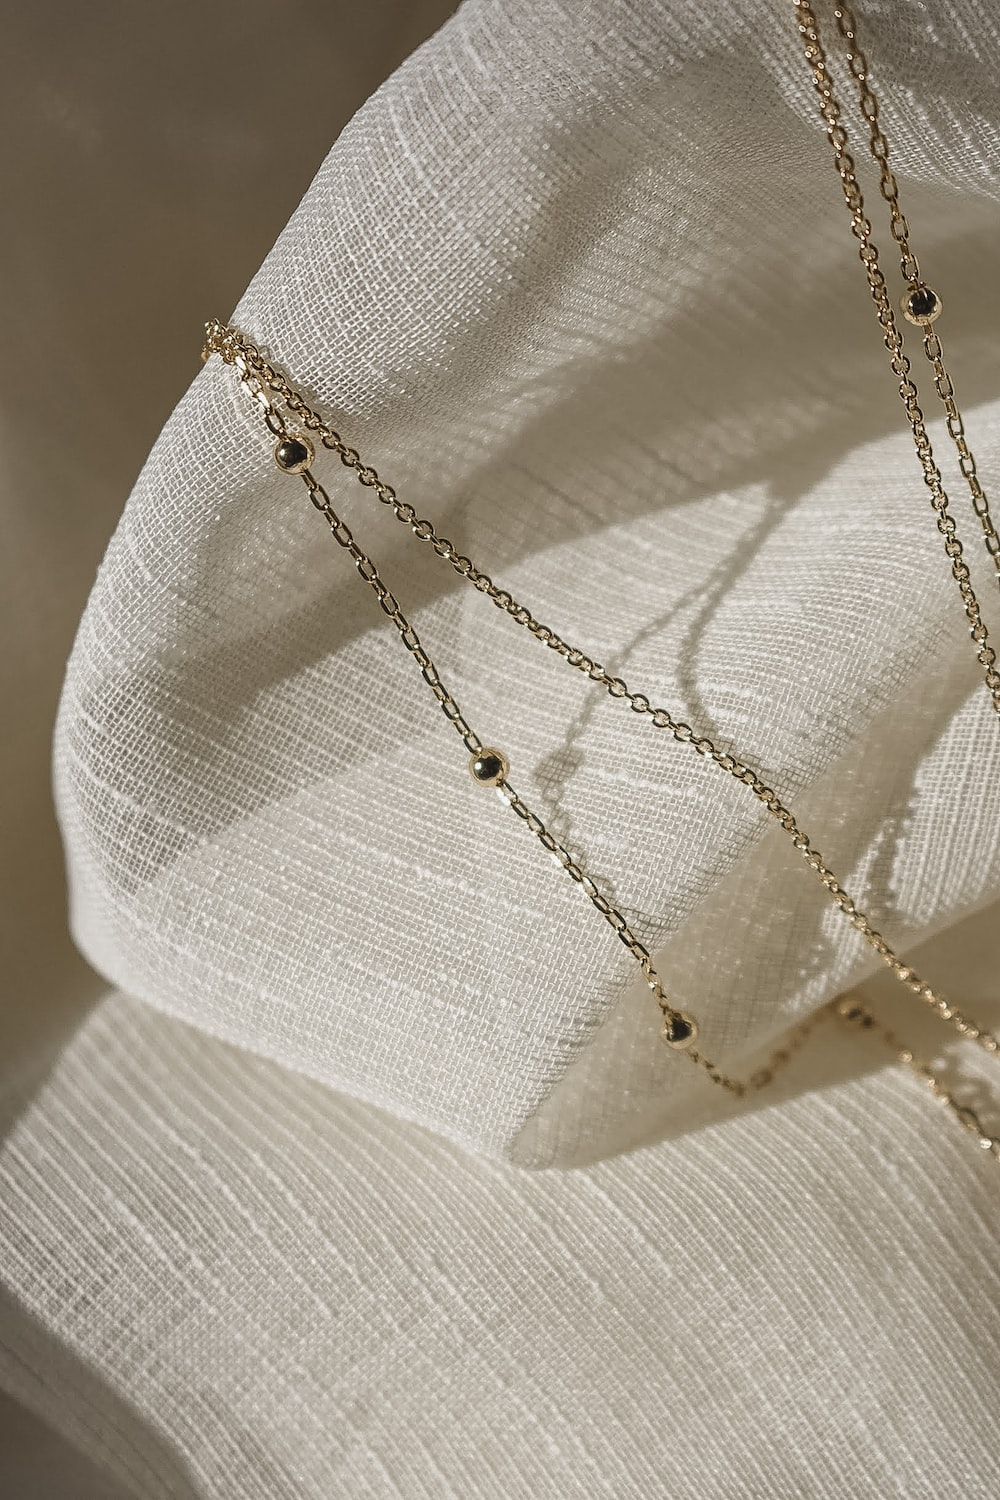 silver necklace on white textile